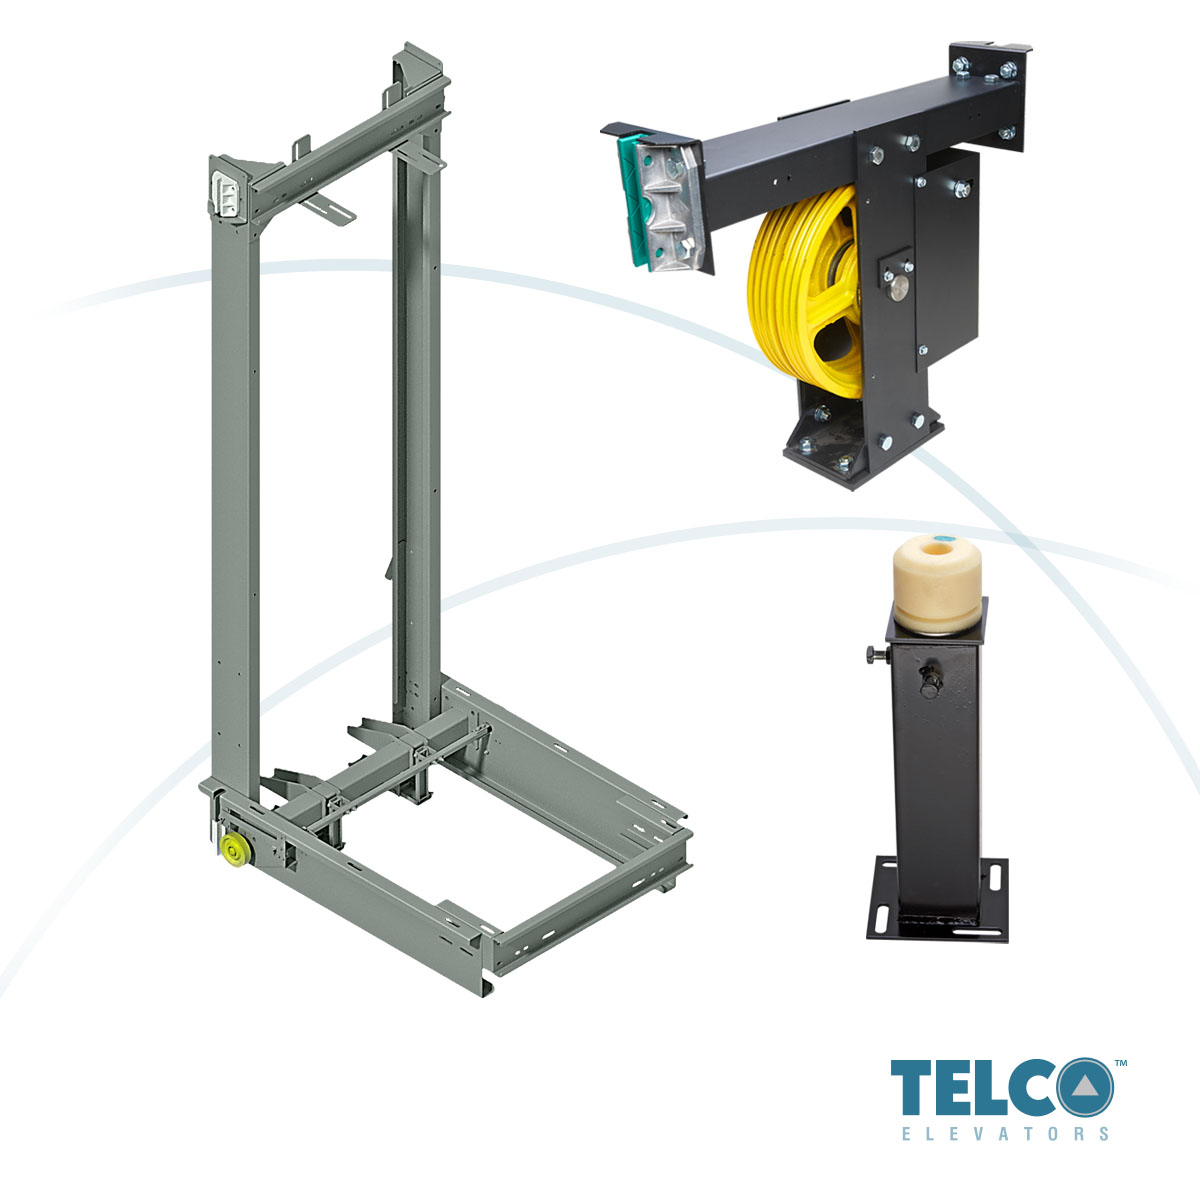 Hydraulic Lift SET TELCO used by TELCO™